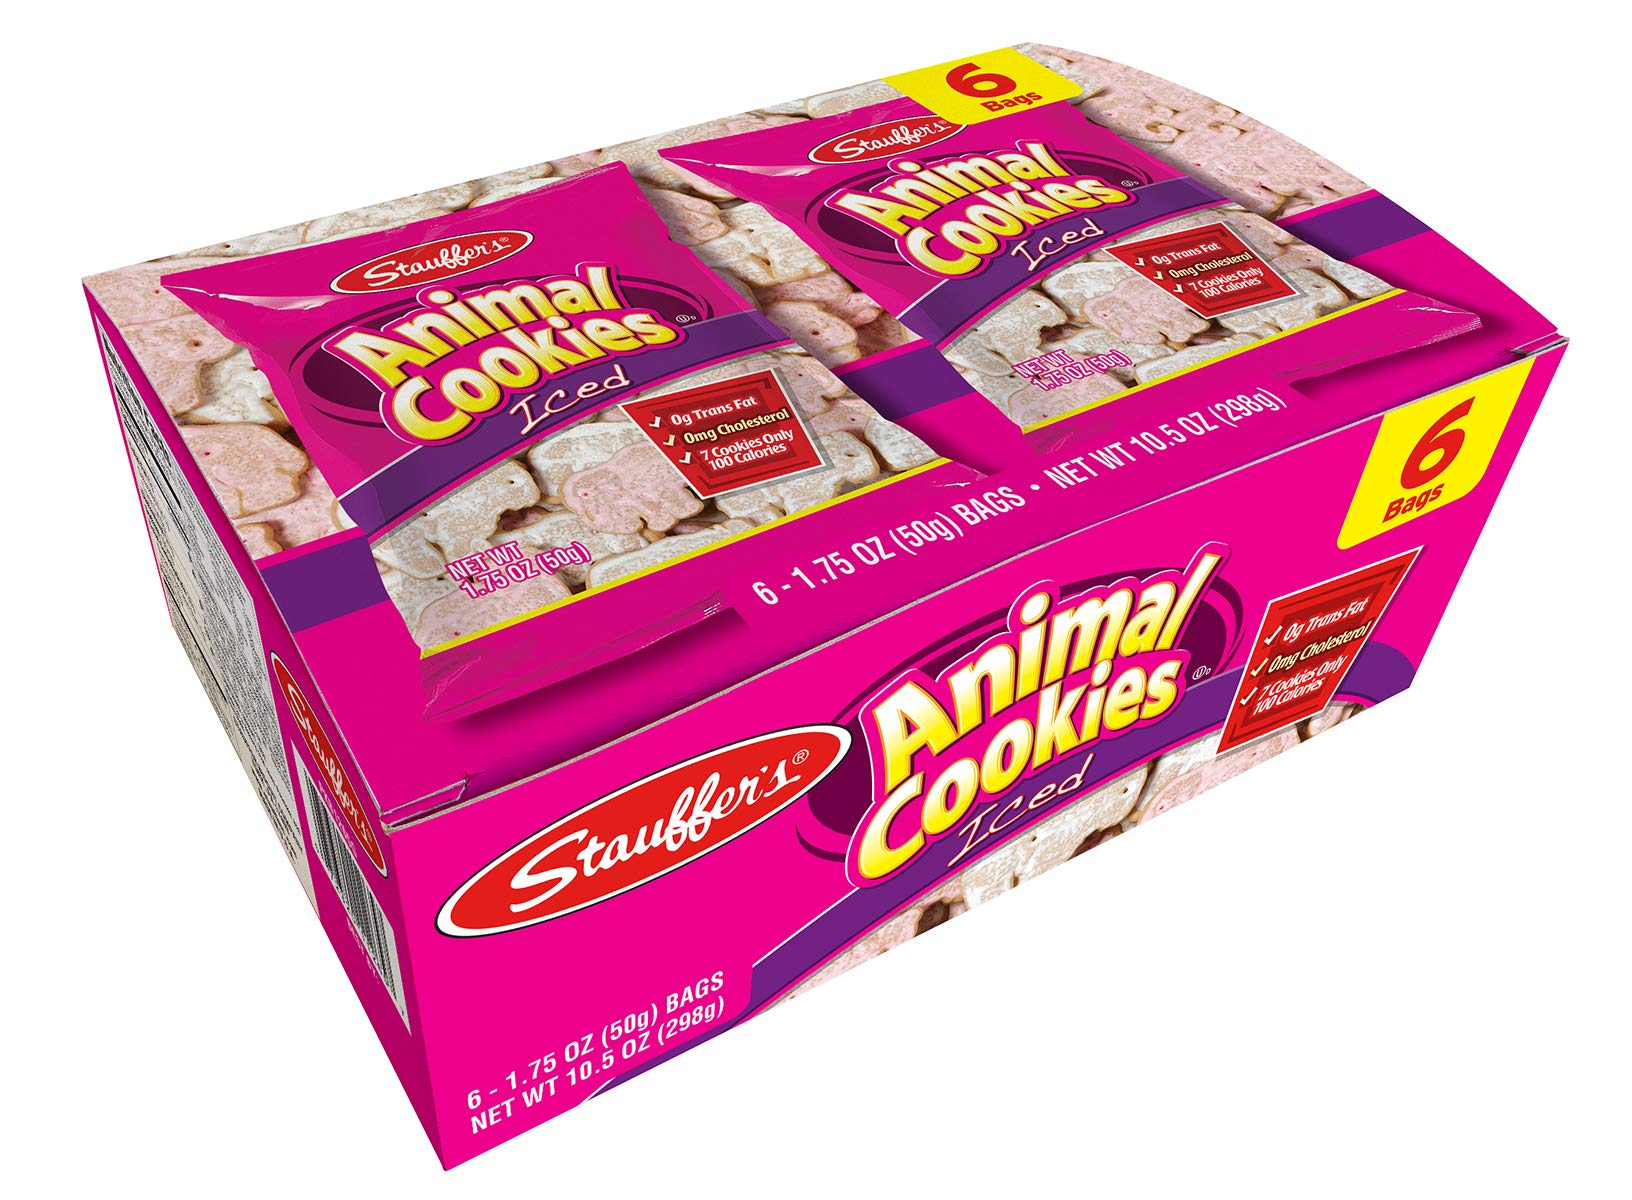 Stauffer's 12 Snack Pack Set Iced Animal Cookies, 1.75 Oz. Each